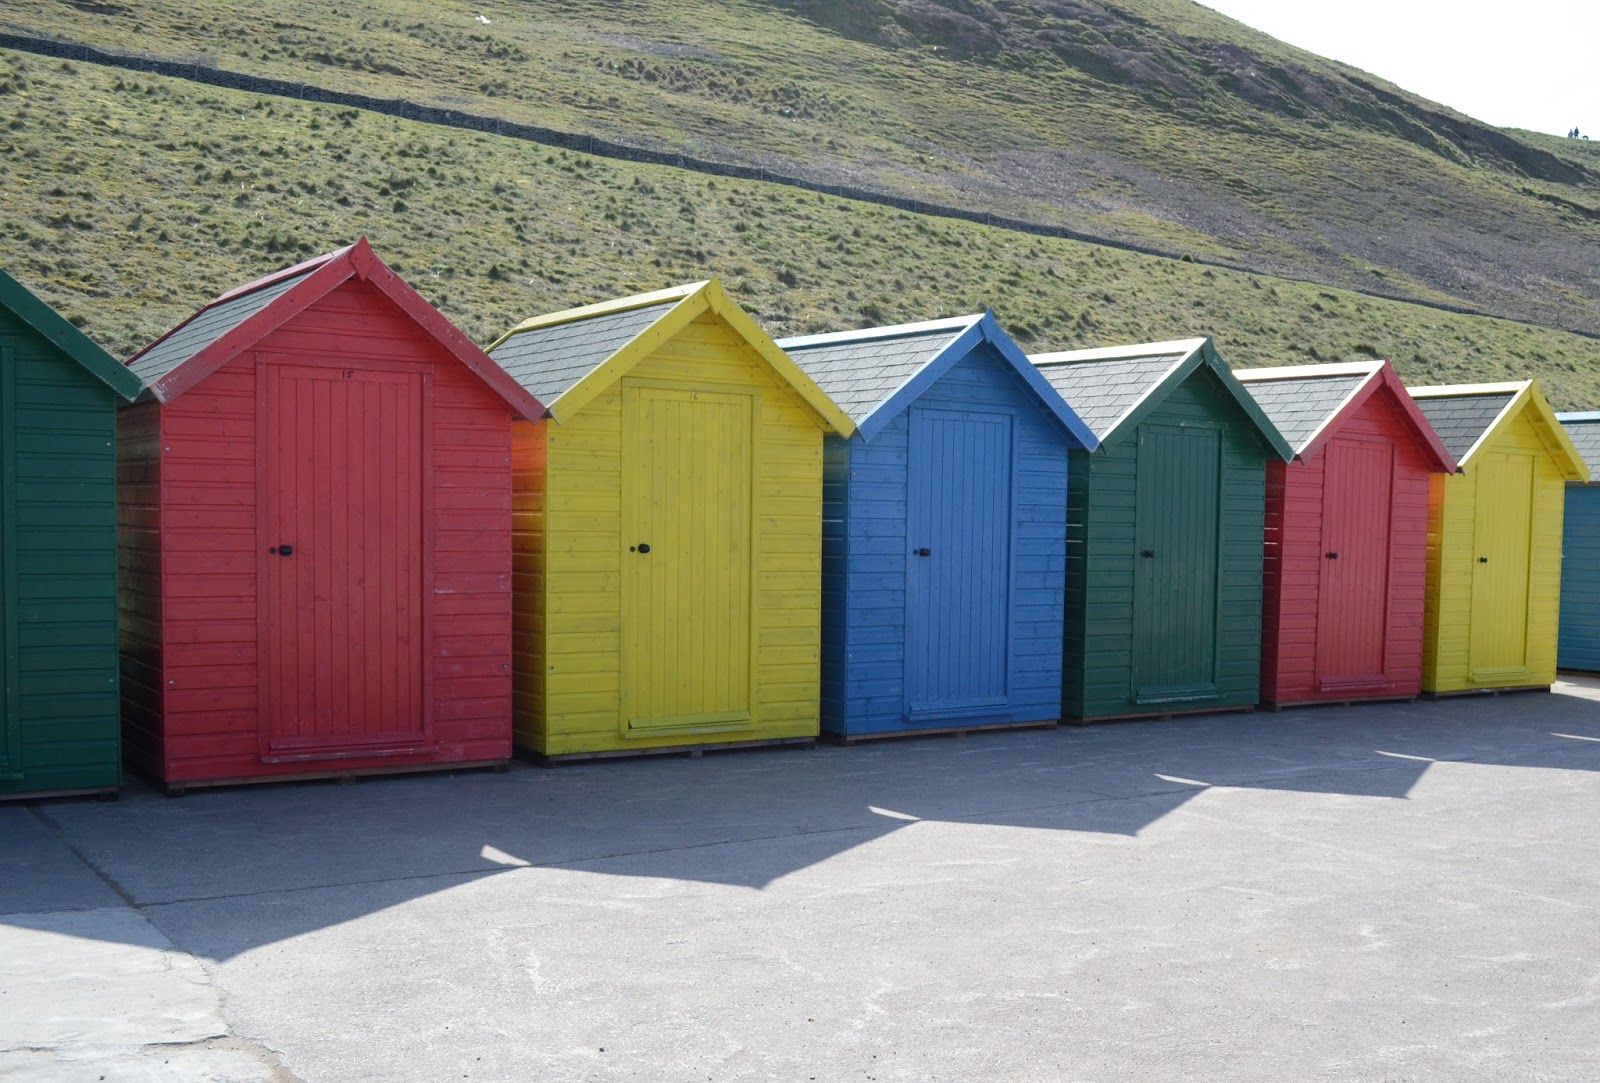 Multi coloured beach huts, English coastline, Whitby bay, picturesque